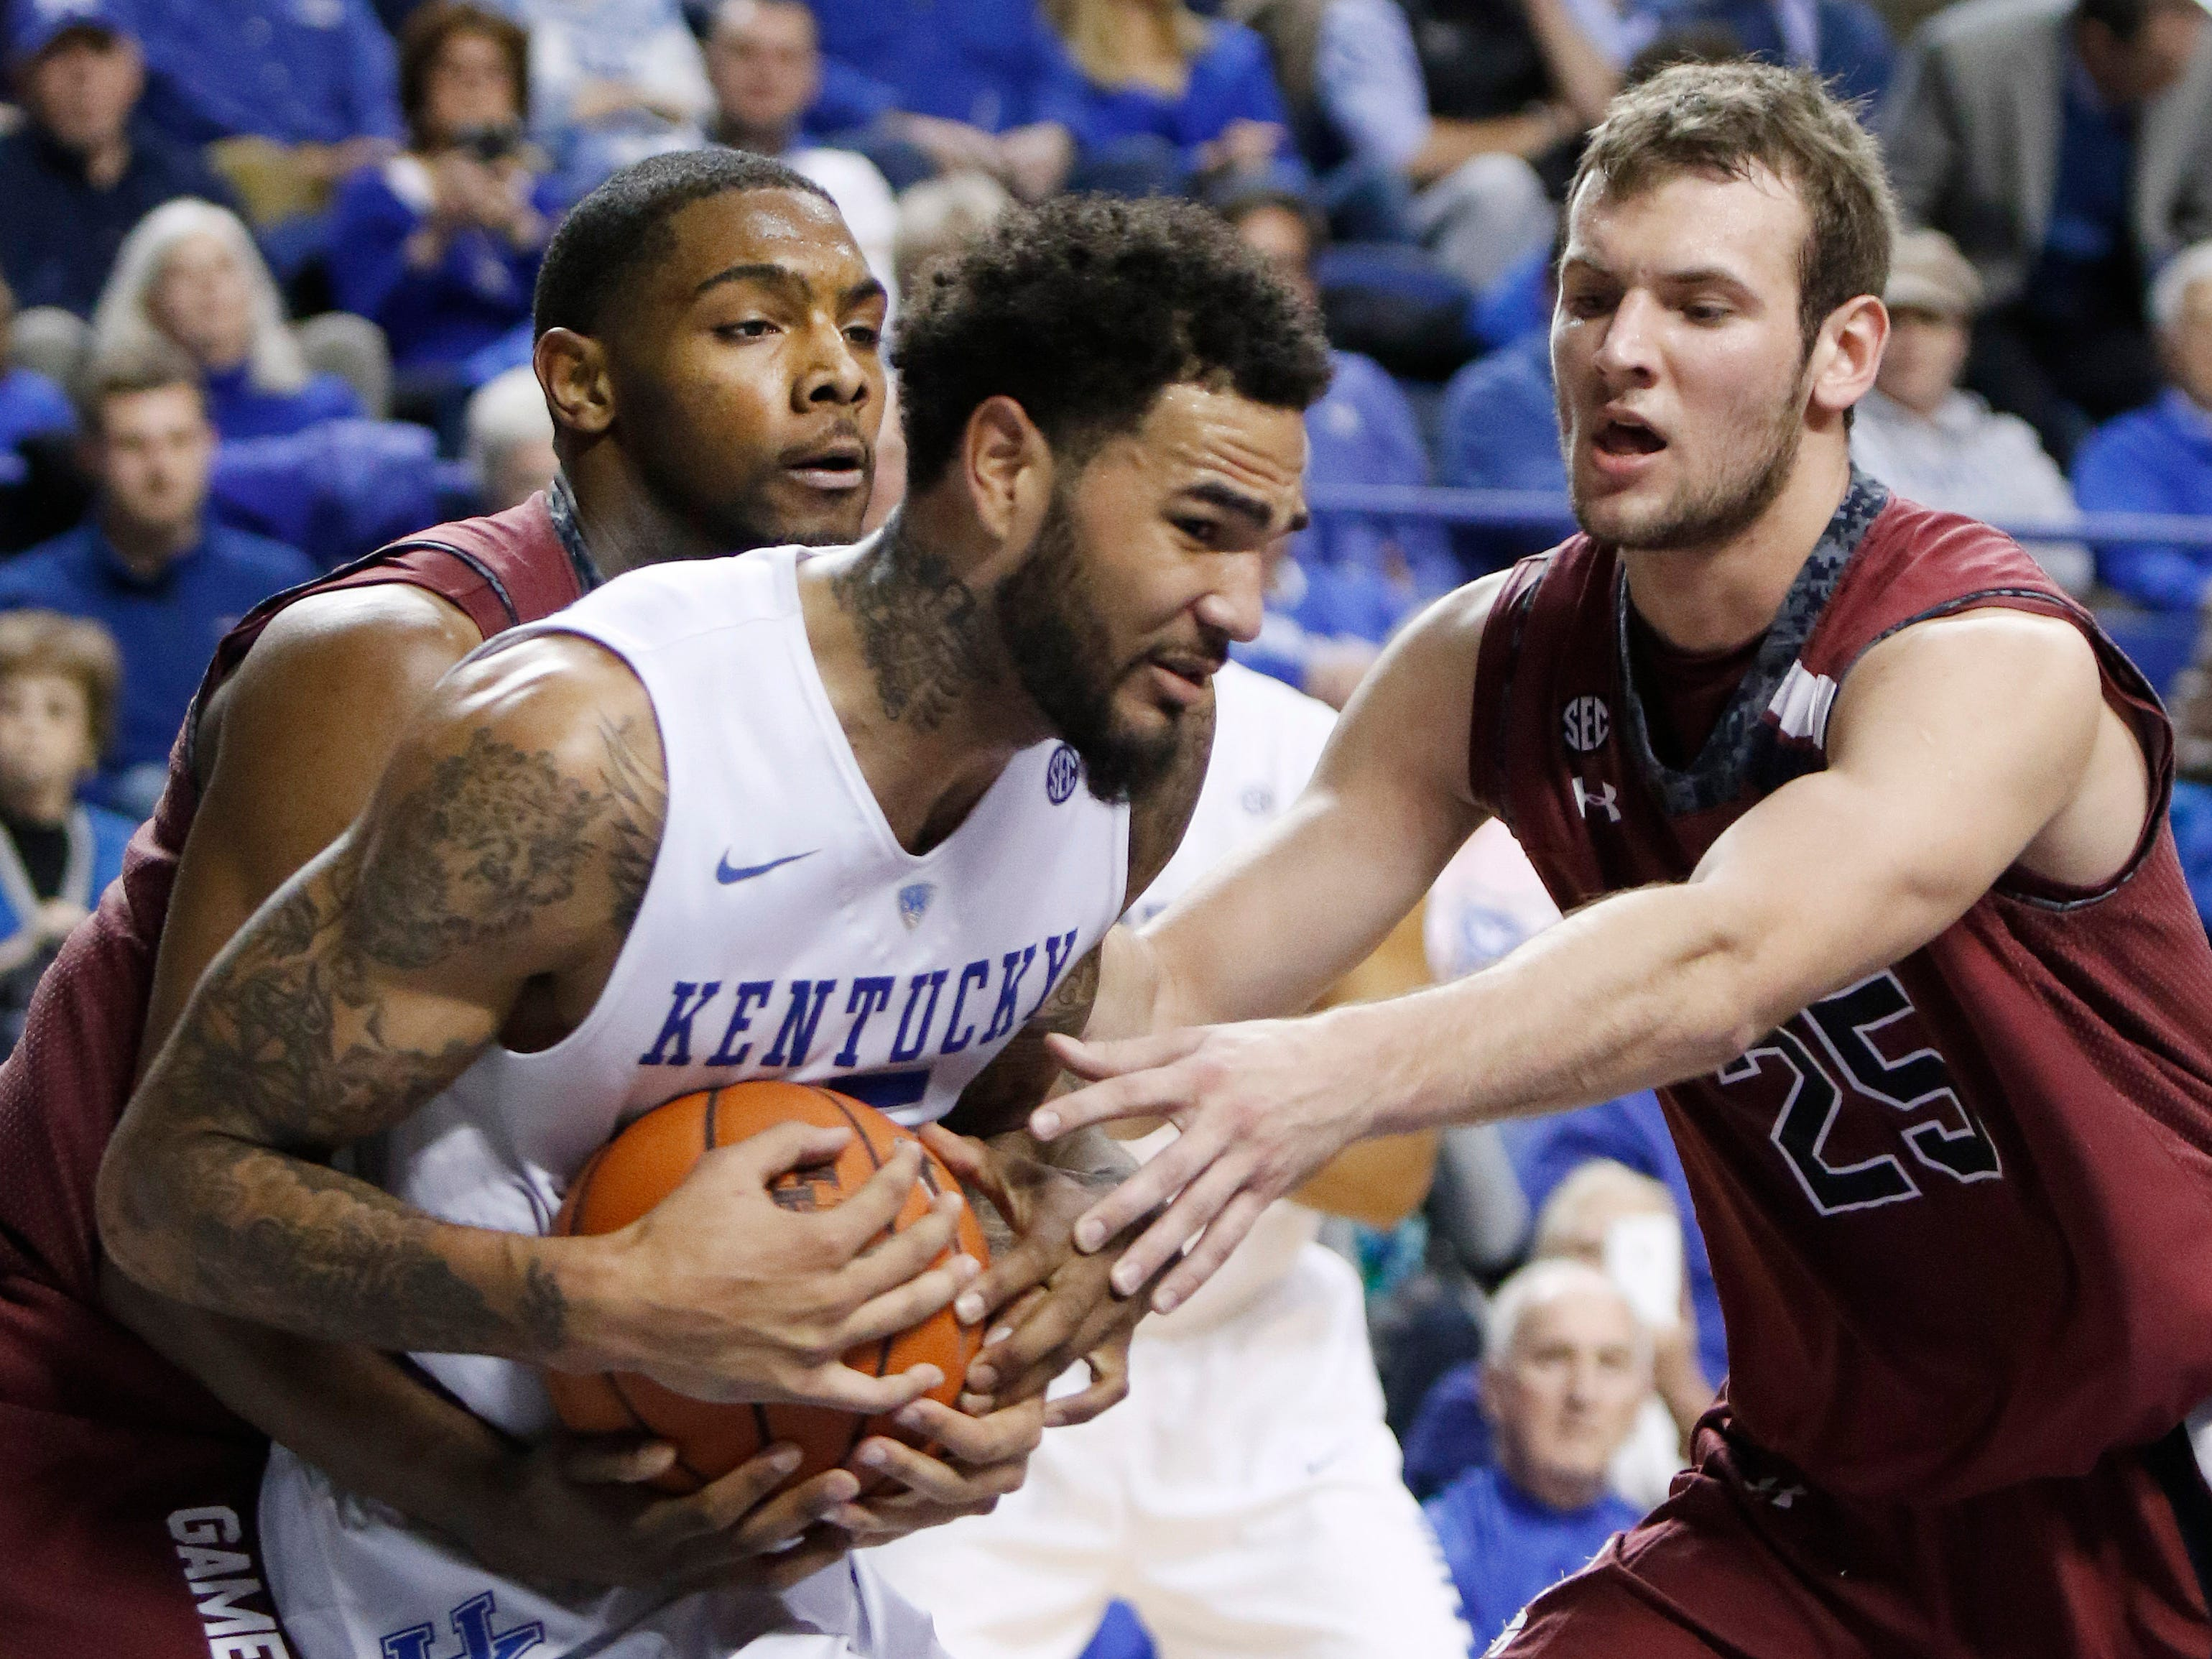 Kentucky's Willie Cauley-Stein, center, is pressured by South Carolina's Sindarius Thornwell, left, and Mindaugas Kacinas during the second half of an NCAA college basketball game, Saturday, Feb. 14, 2015, in Lexington, Ky. (AP Photo/James Crisp)